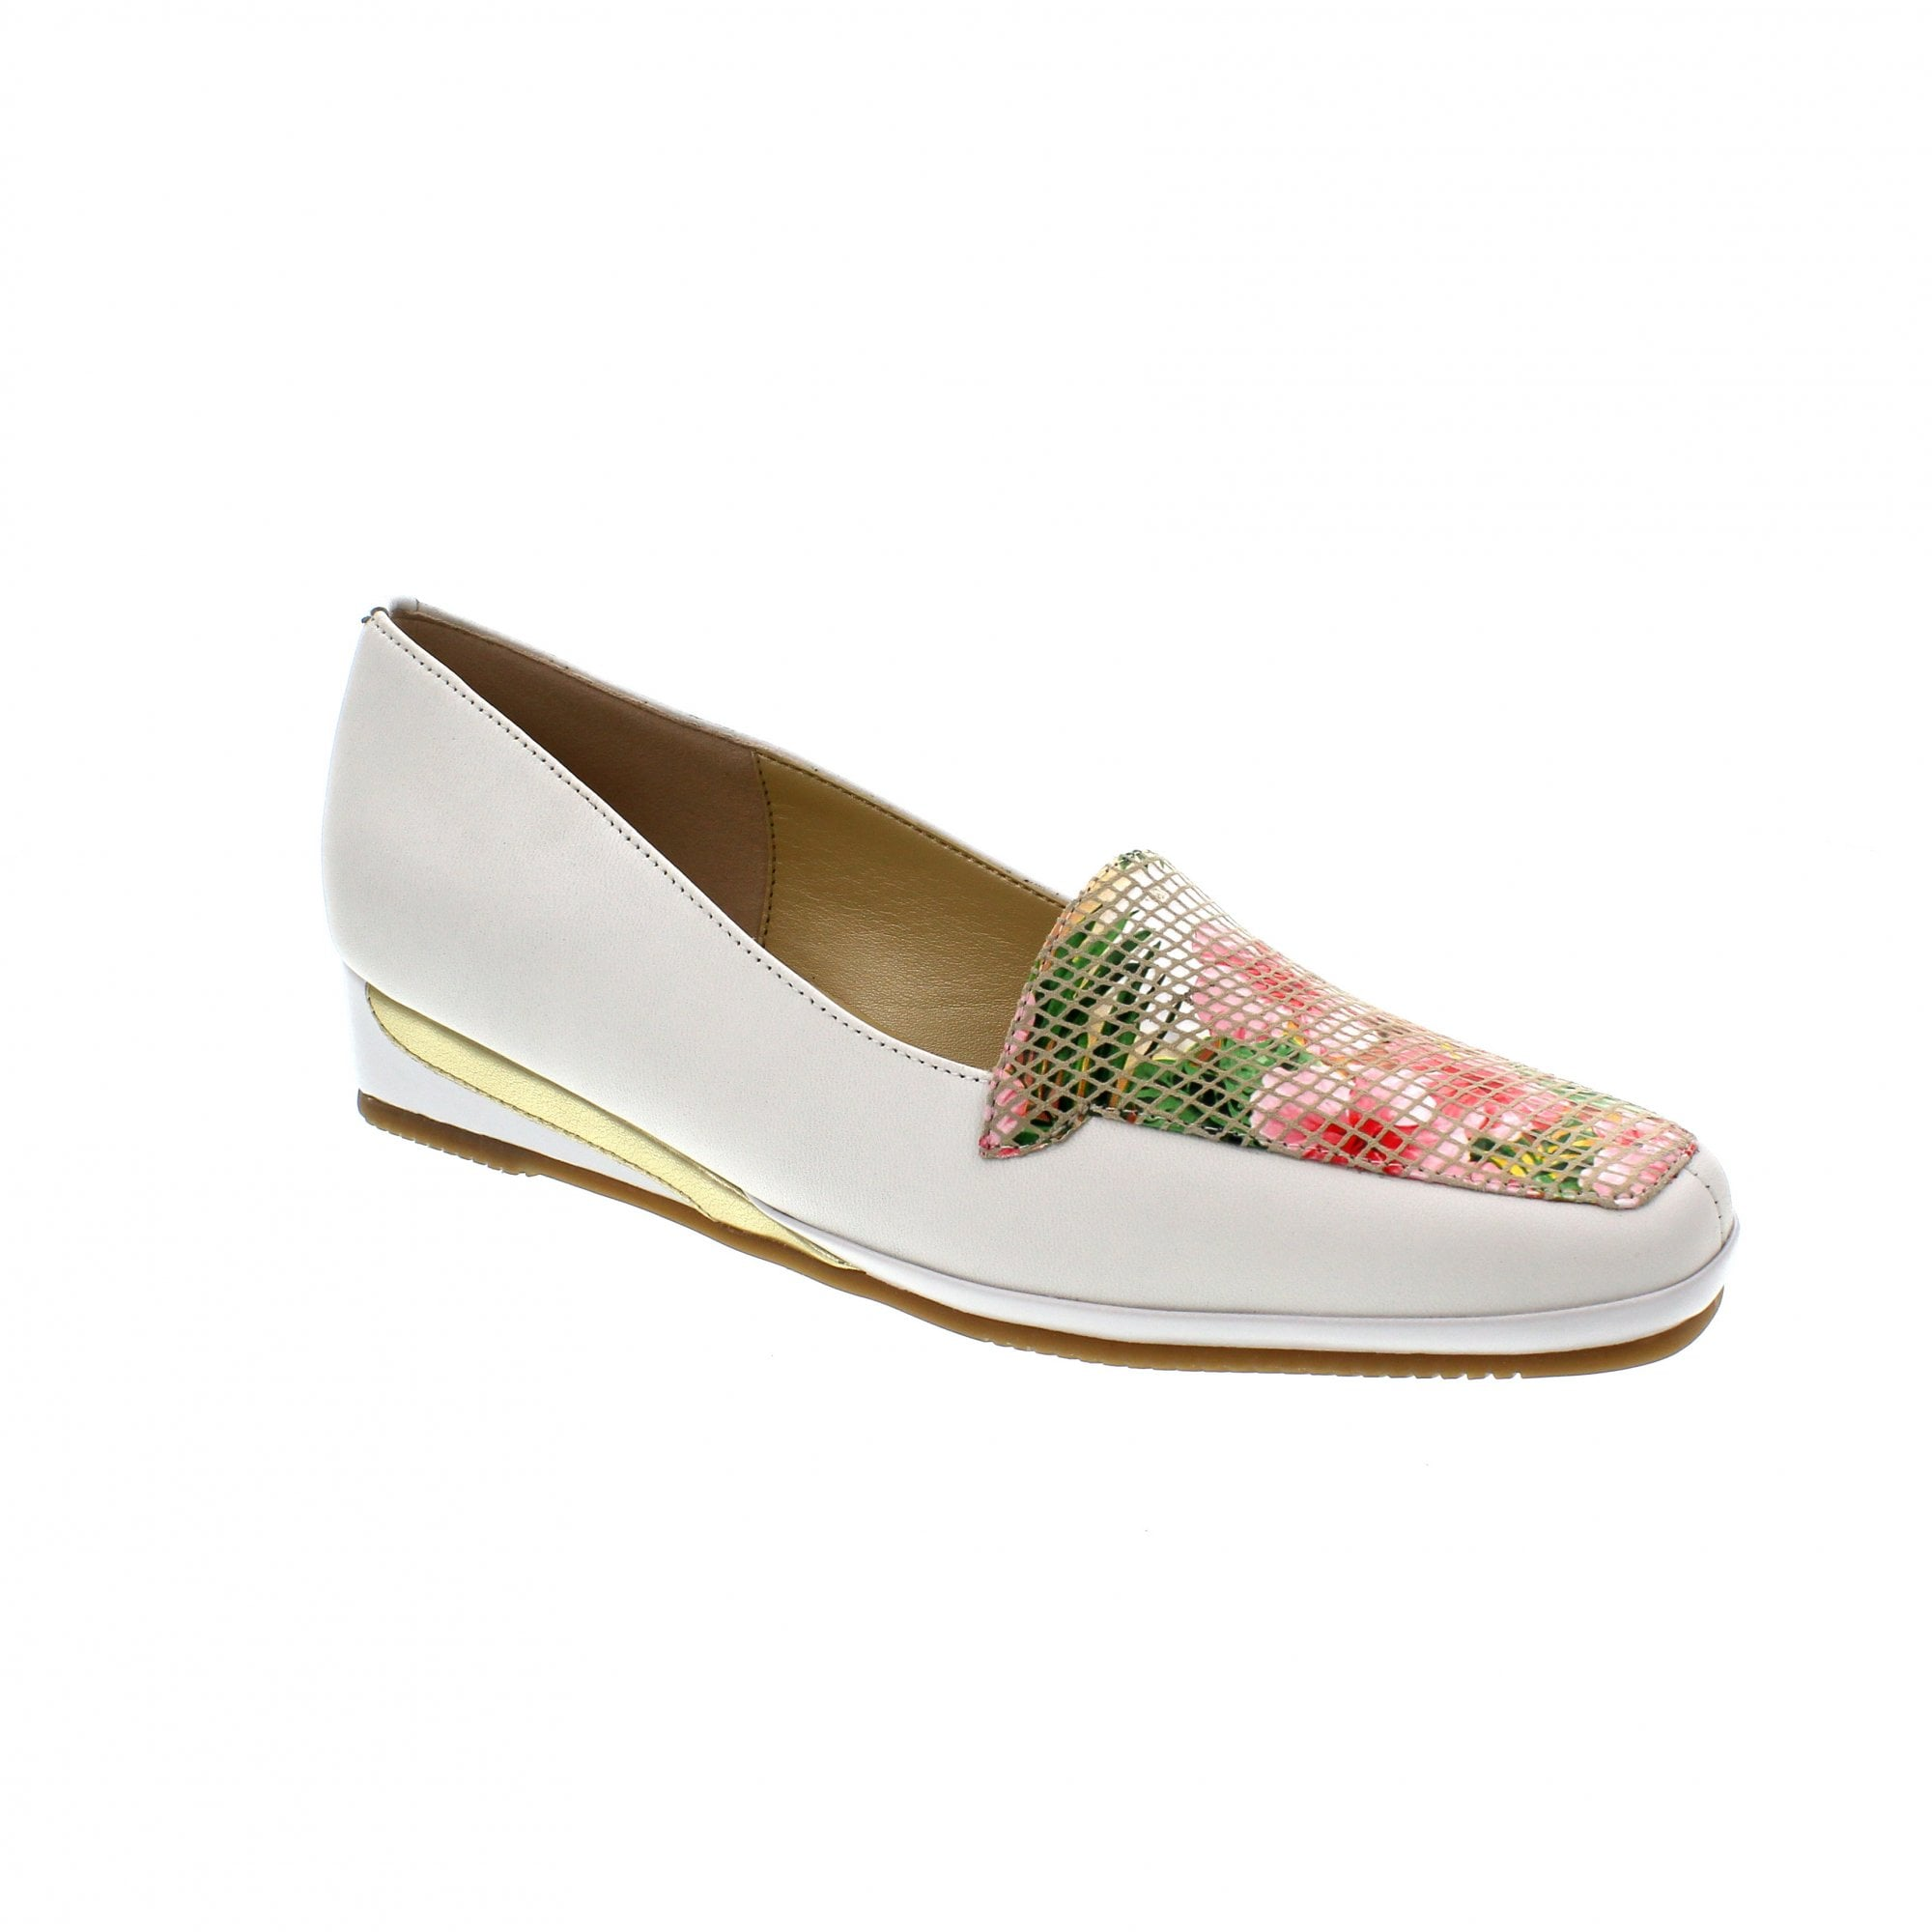 1391bb03c4af4 Van Dal Verona III 0639940 White/Rose Slip On Shoes | Rogerson Shoes